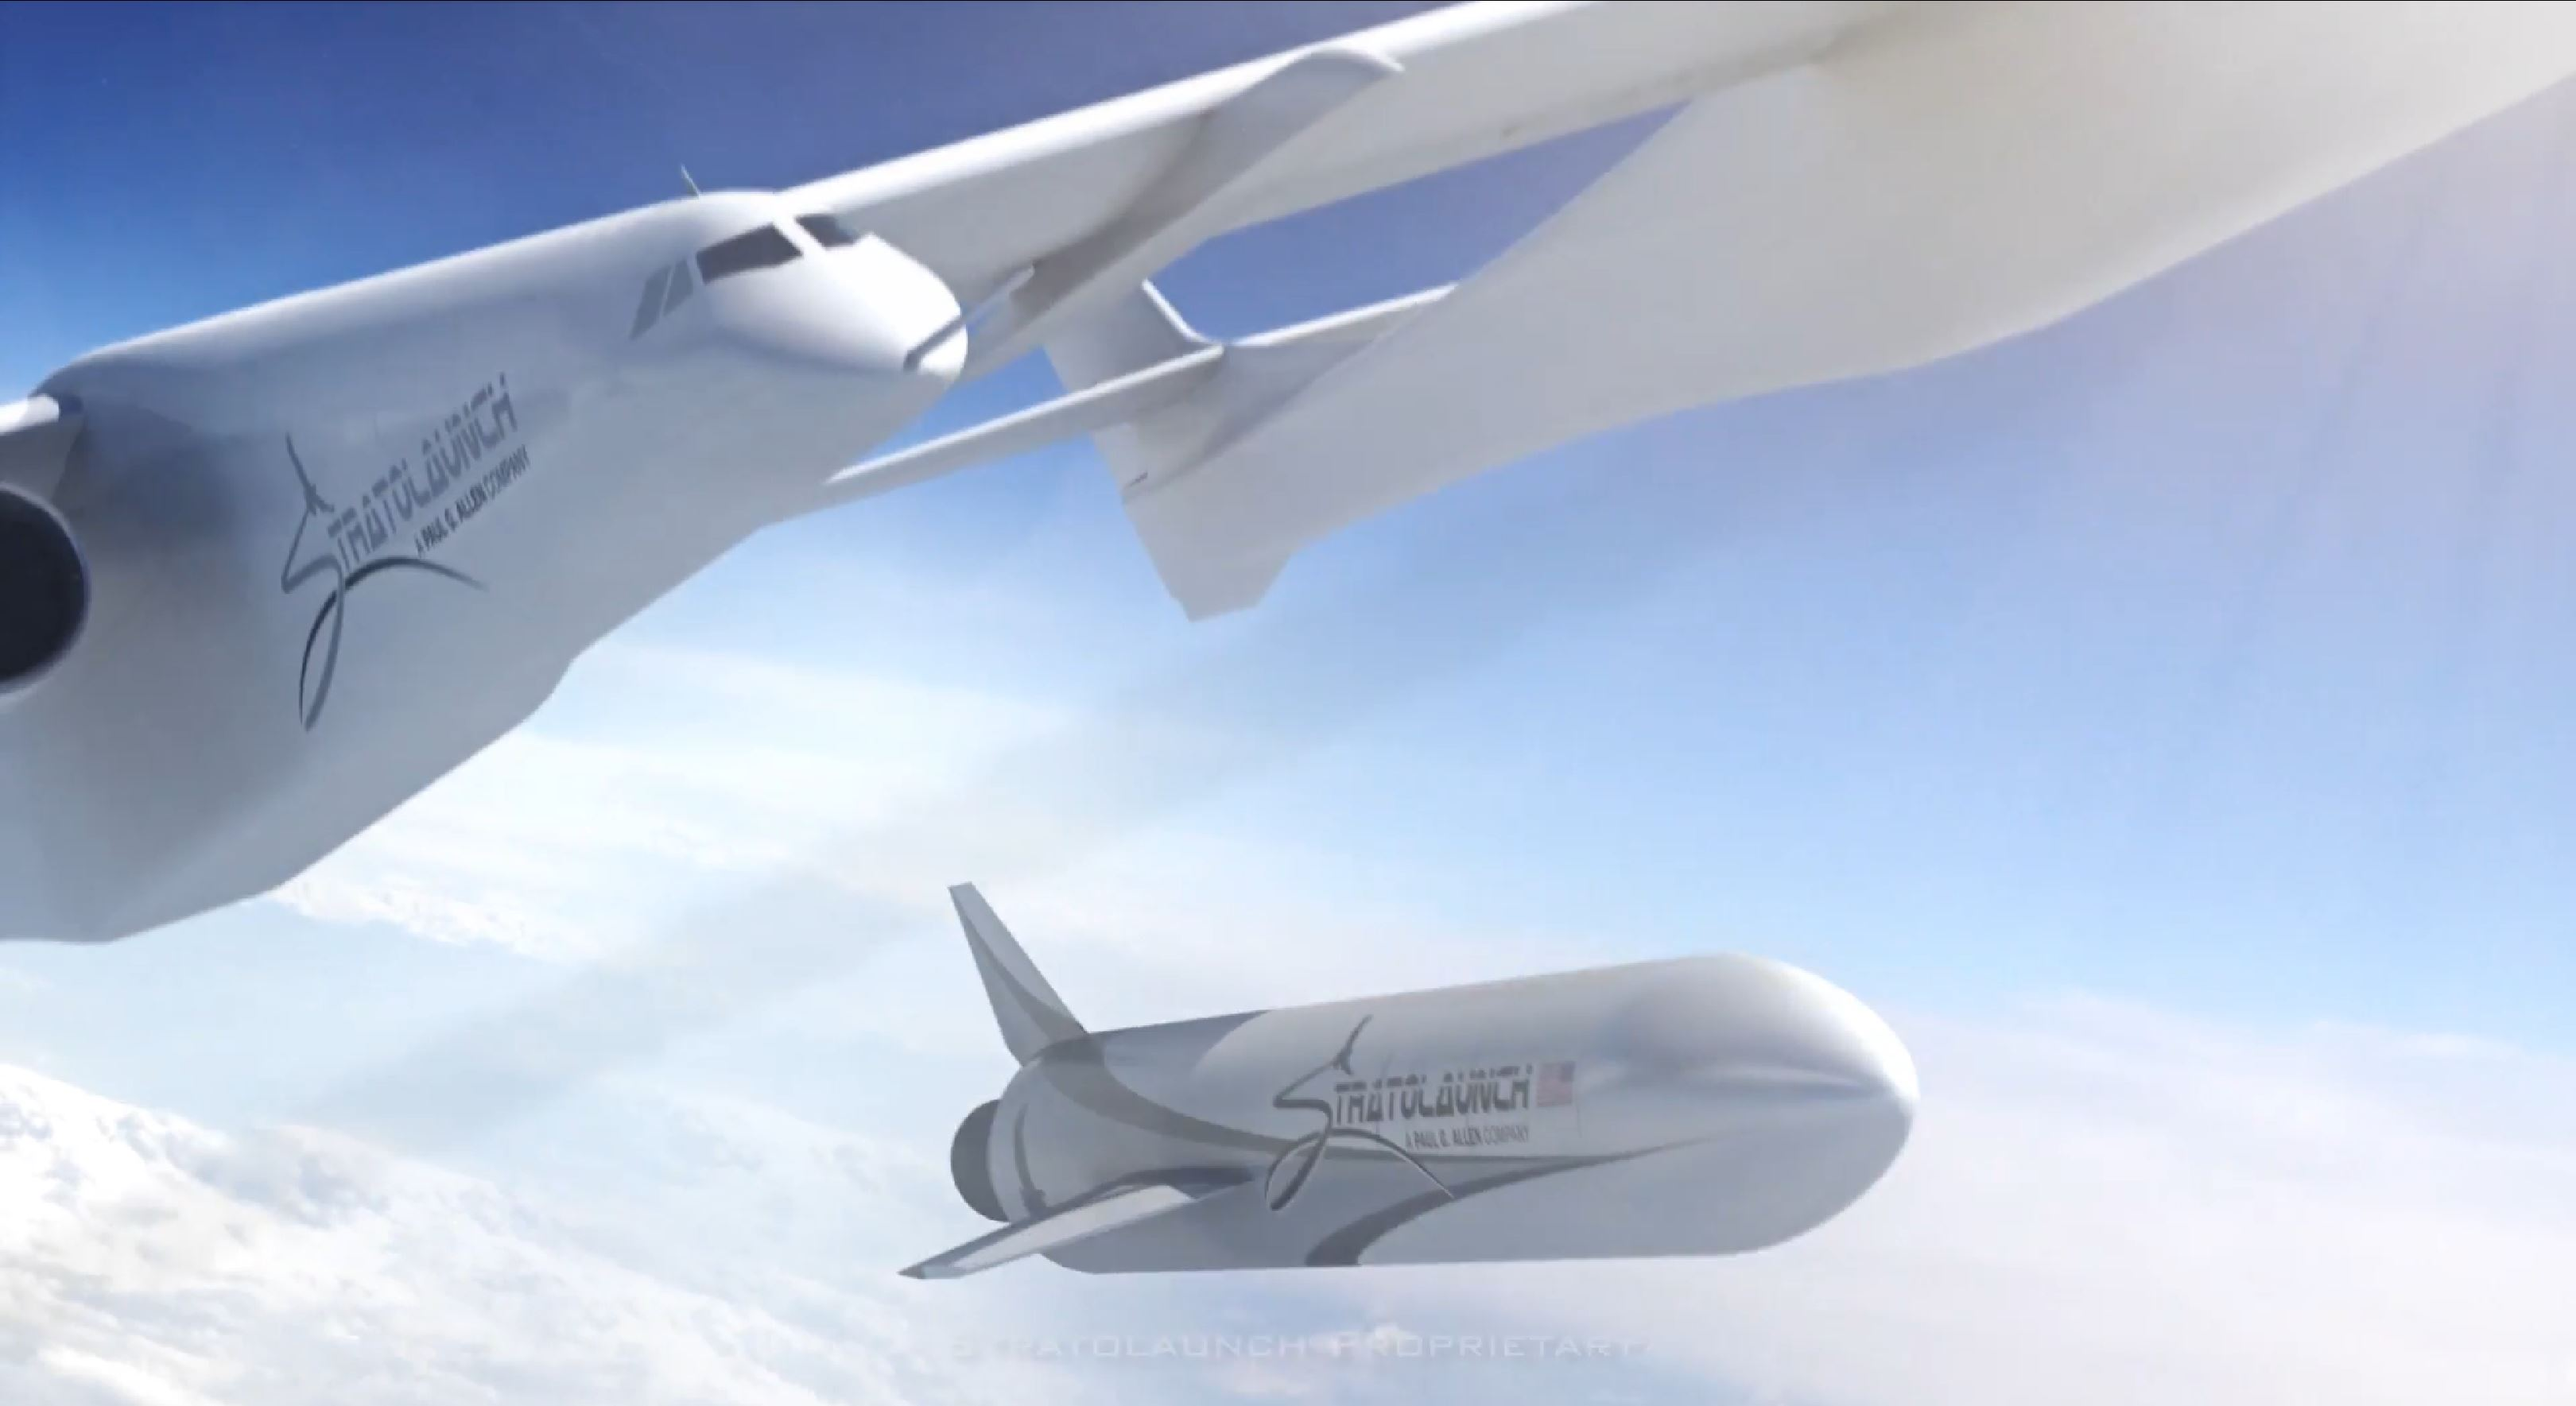 Roc and rocket (Stratolaunch) 4